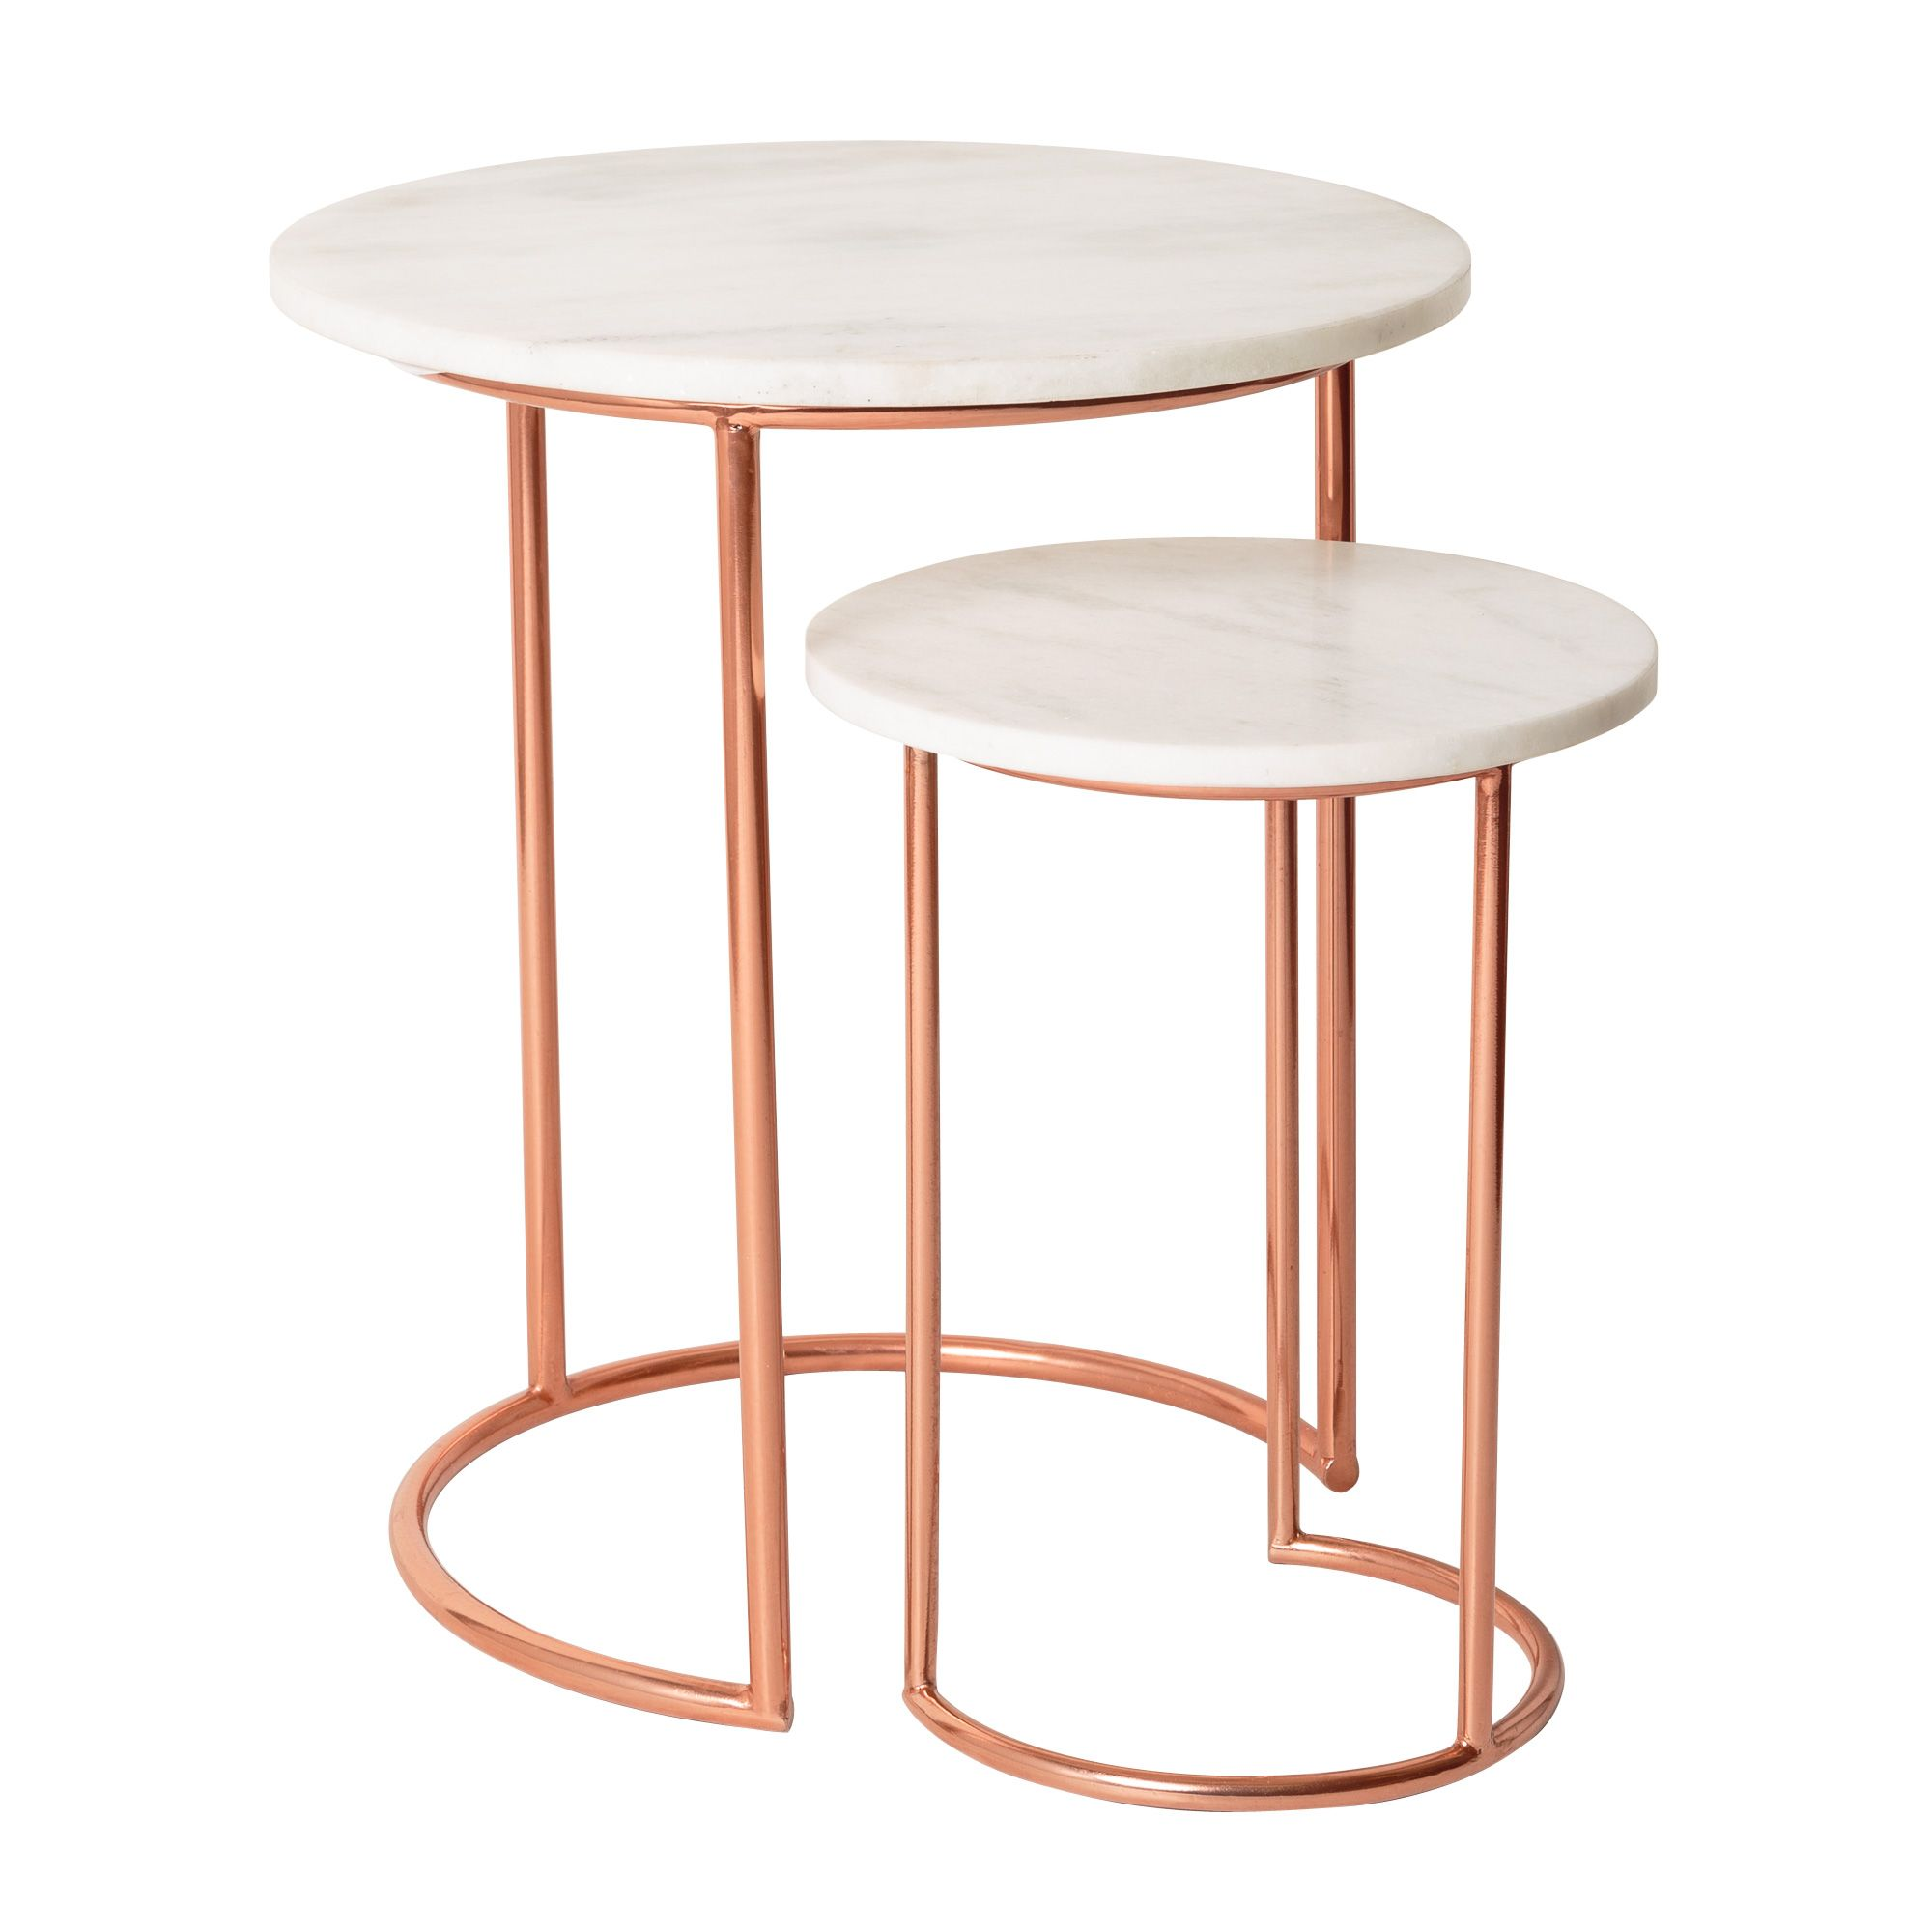 Buy the White Muse Marble & Copper Nesting Tables at Oliver Bonas